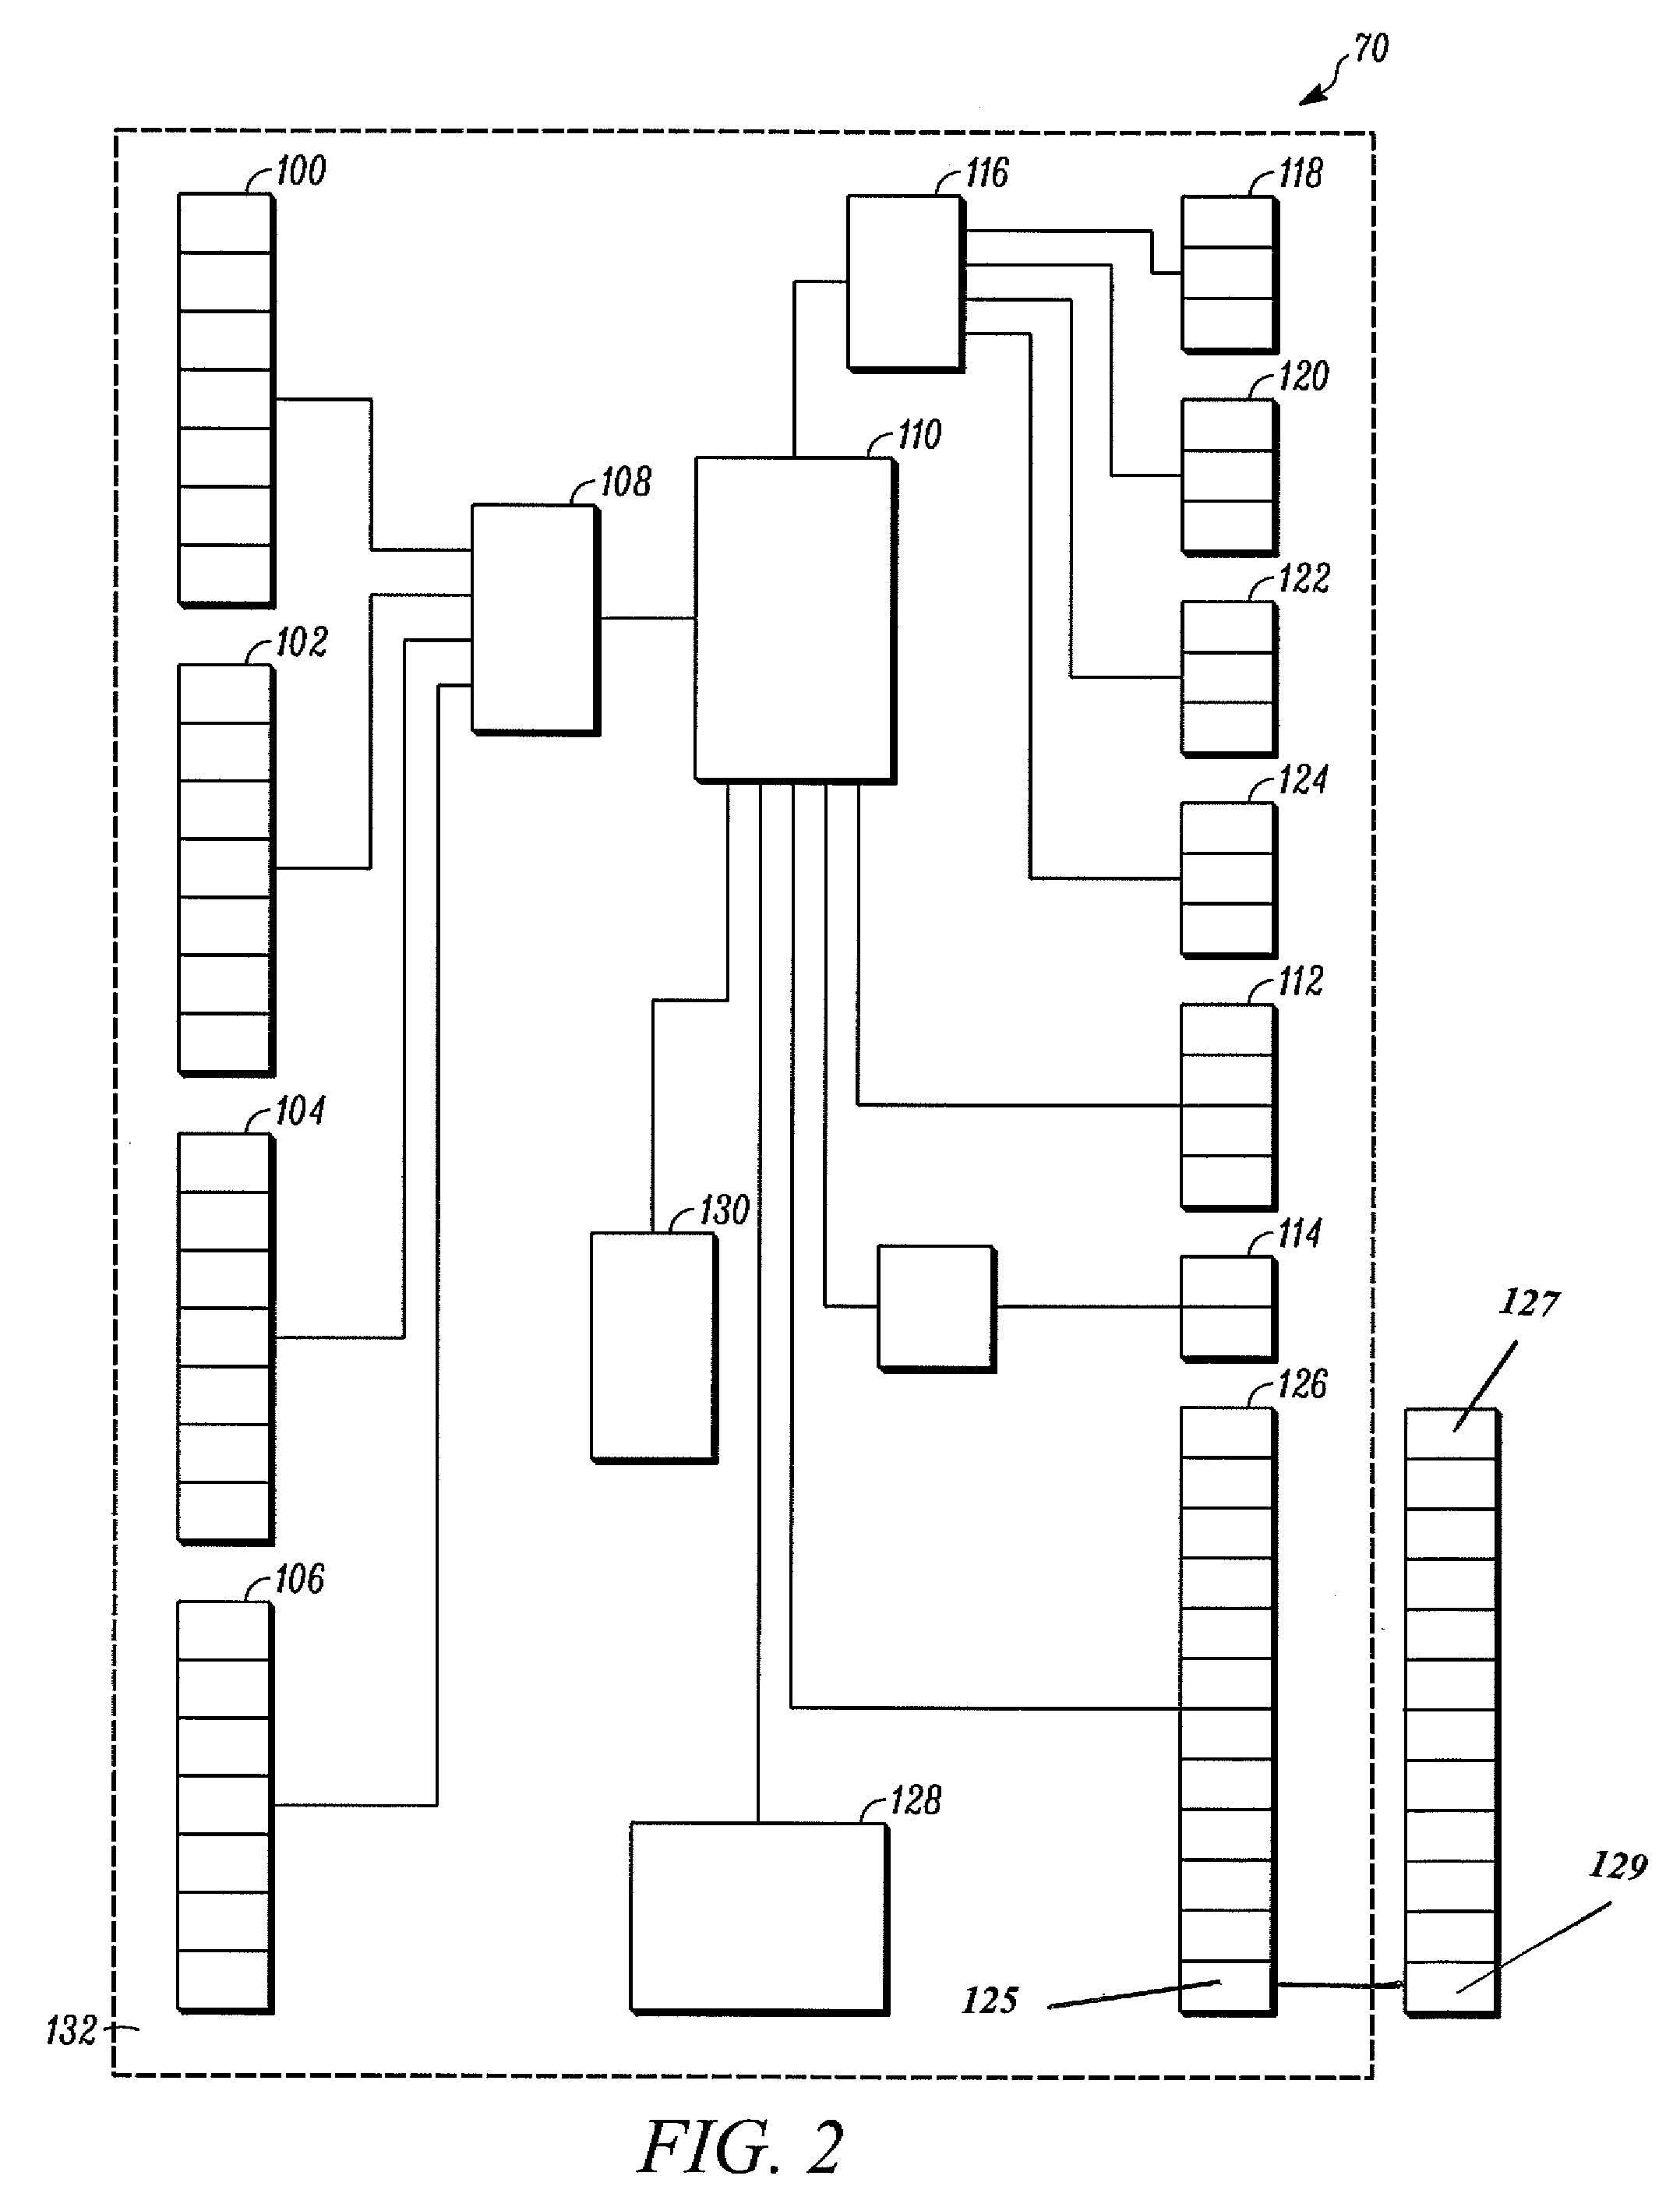 patent us variable speed blower control in an hvac system patent drawing